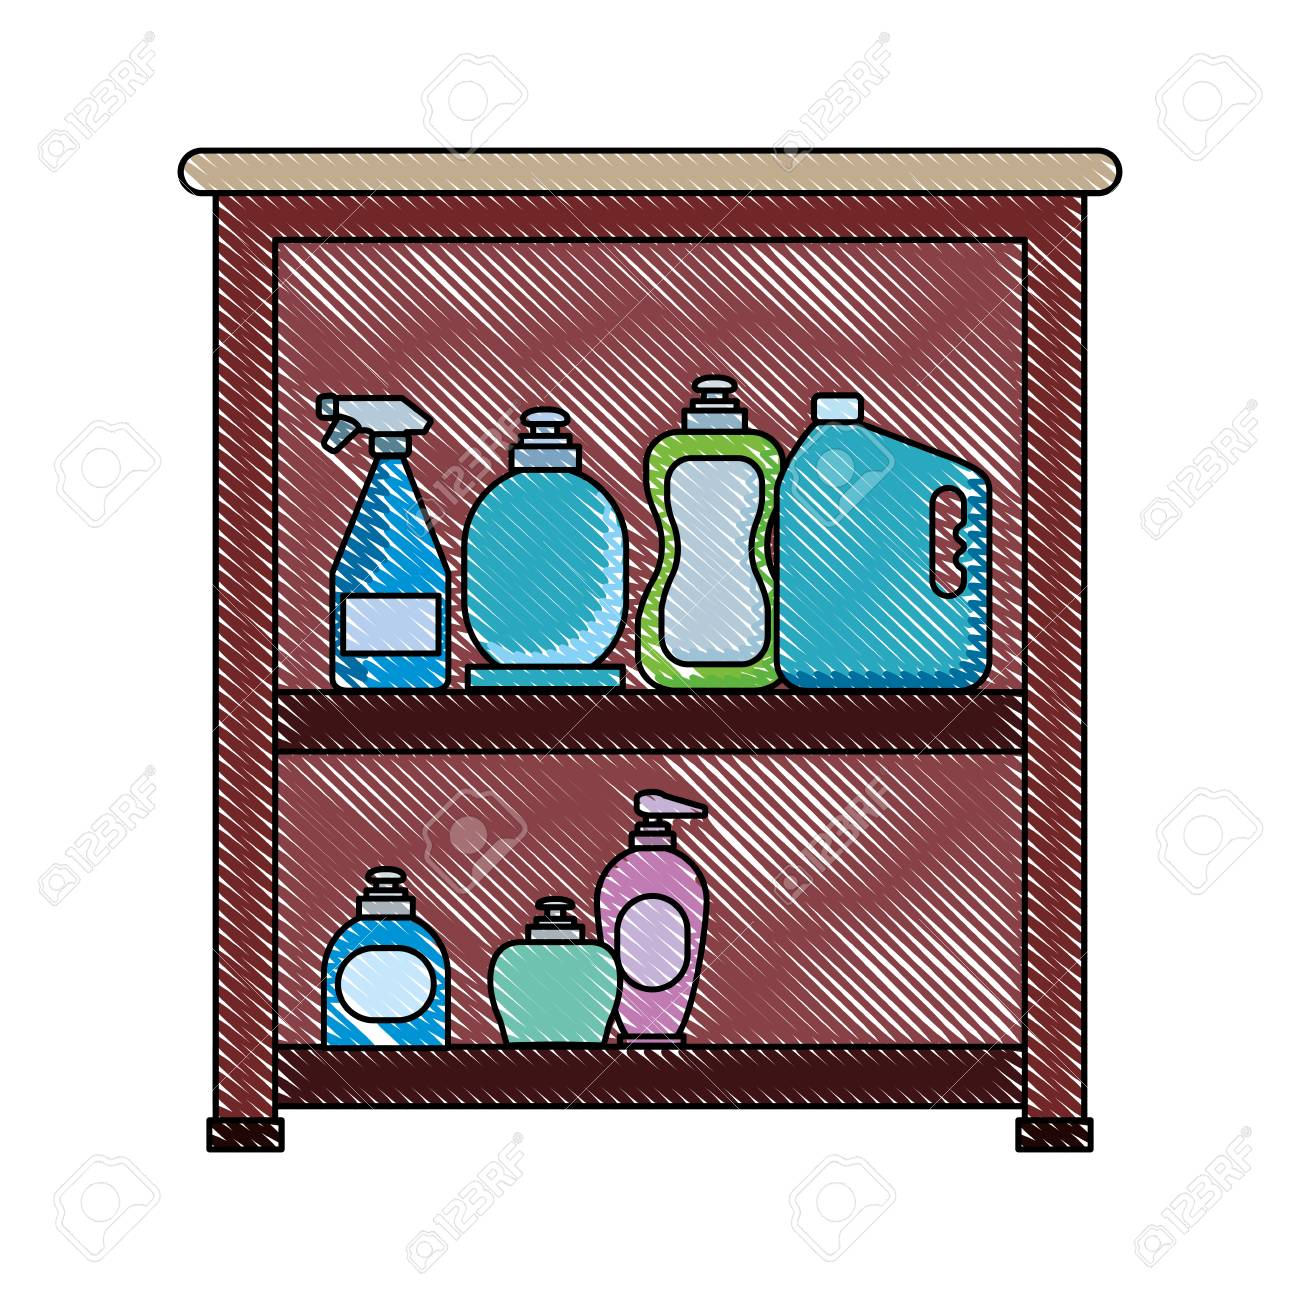 Cleaning Supplies Design In A Cabinet Royalty Free Cliparts